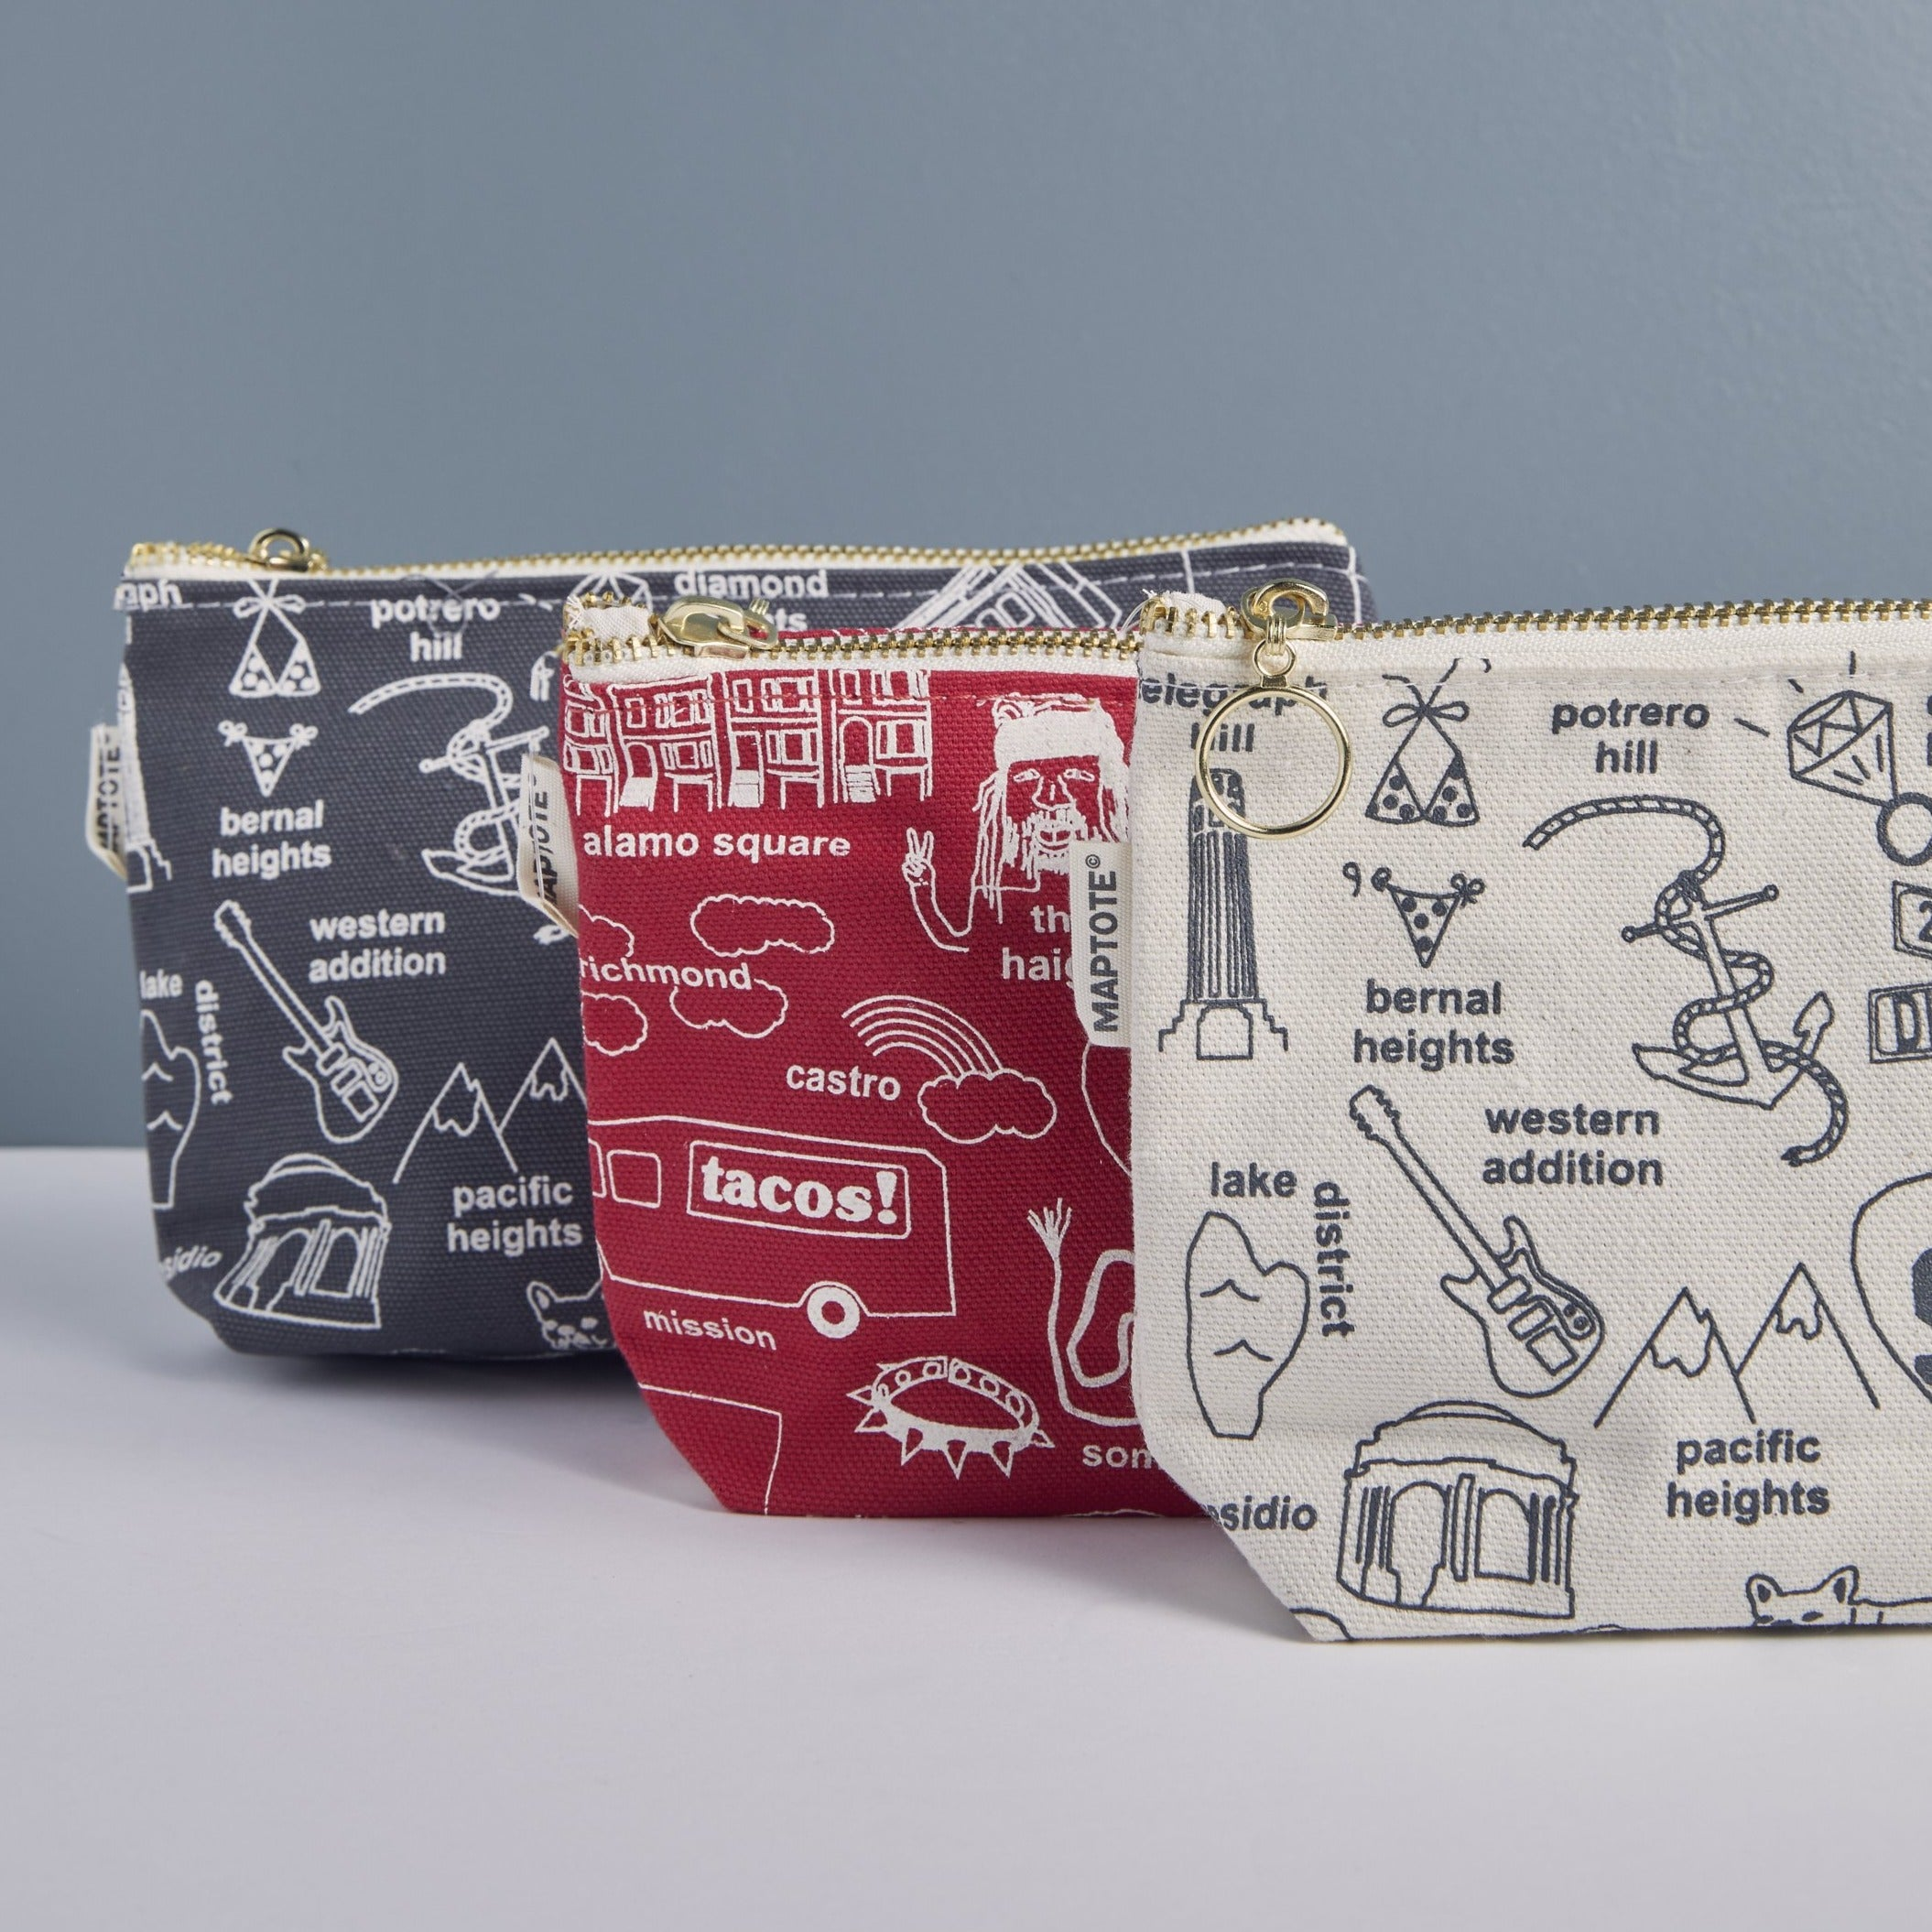 San Francisco Street Zipped Pouch - picnic-sf